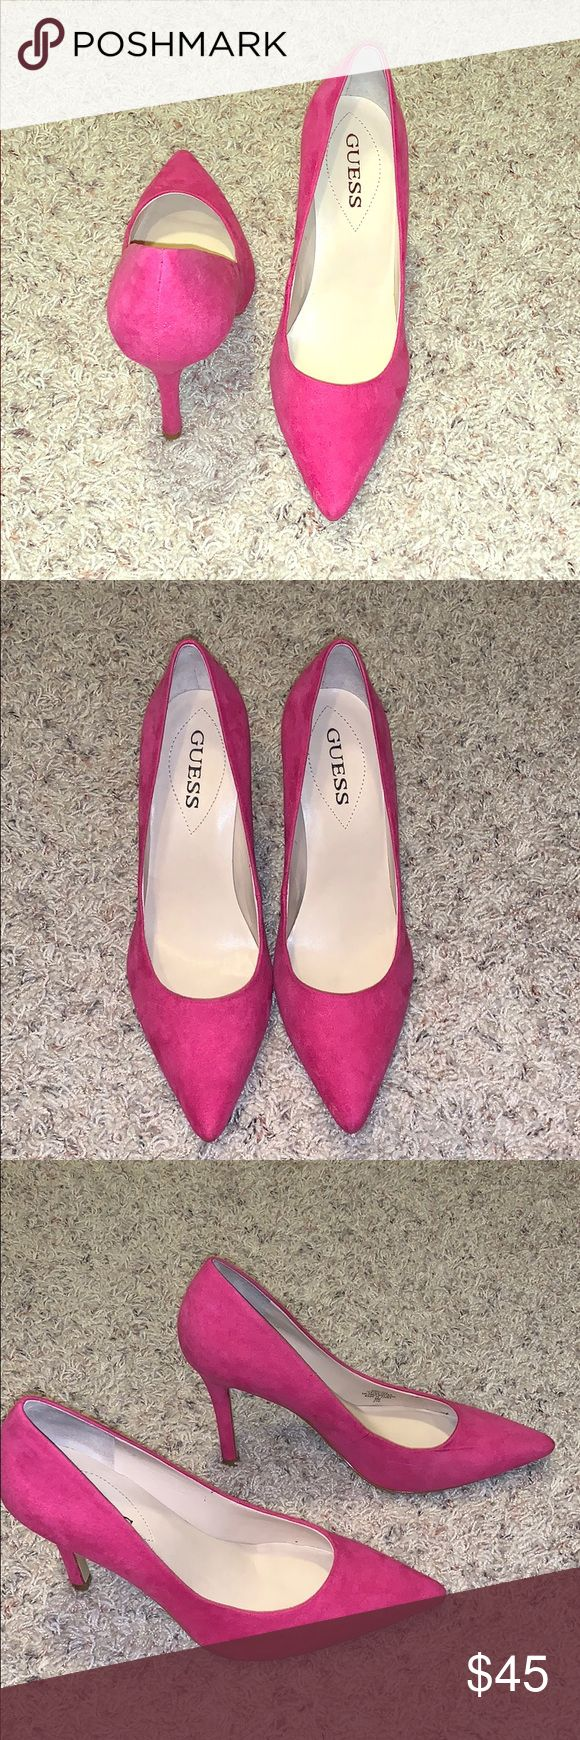 Hot pink suede stilettos Like new!!! Super sexy heels. Pair them with jeans, slacks or a dress. These are so versatile. Guess Shoes Heels